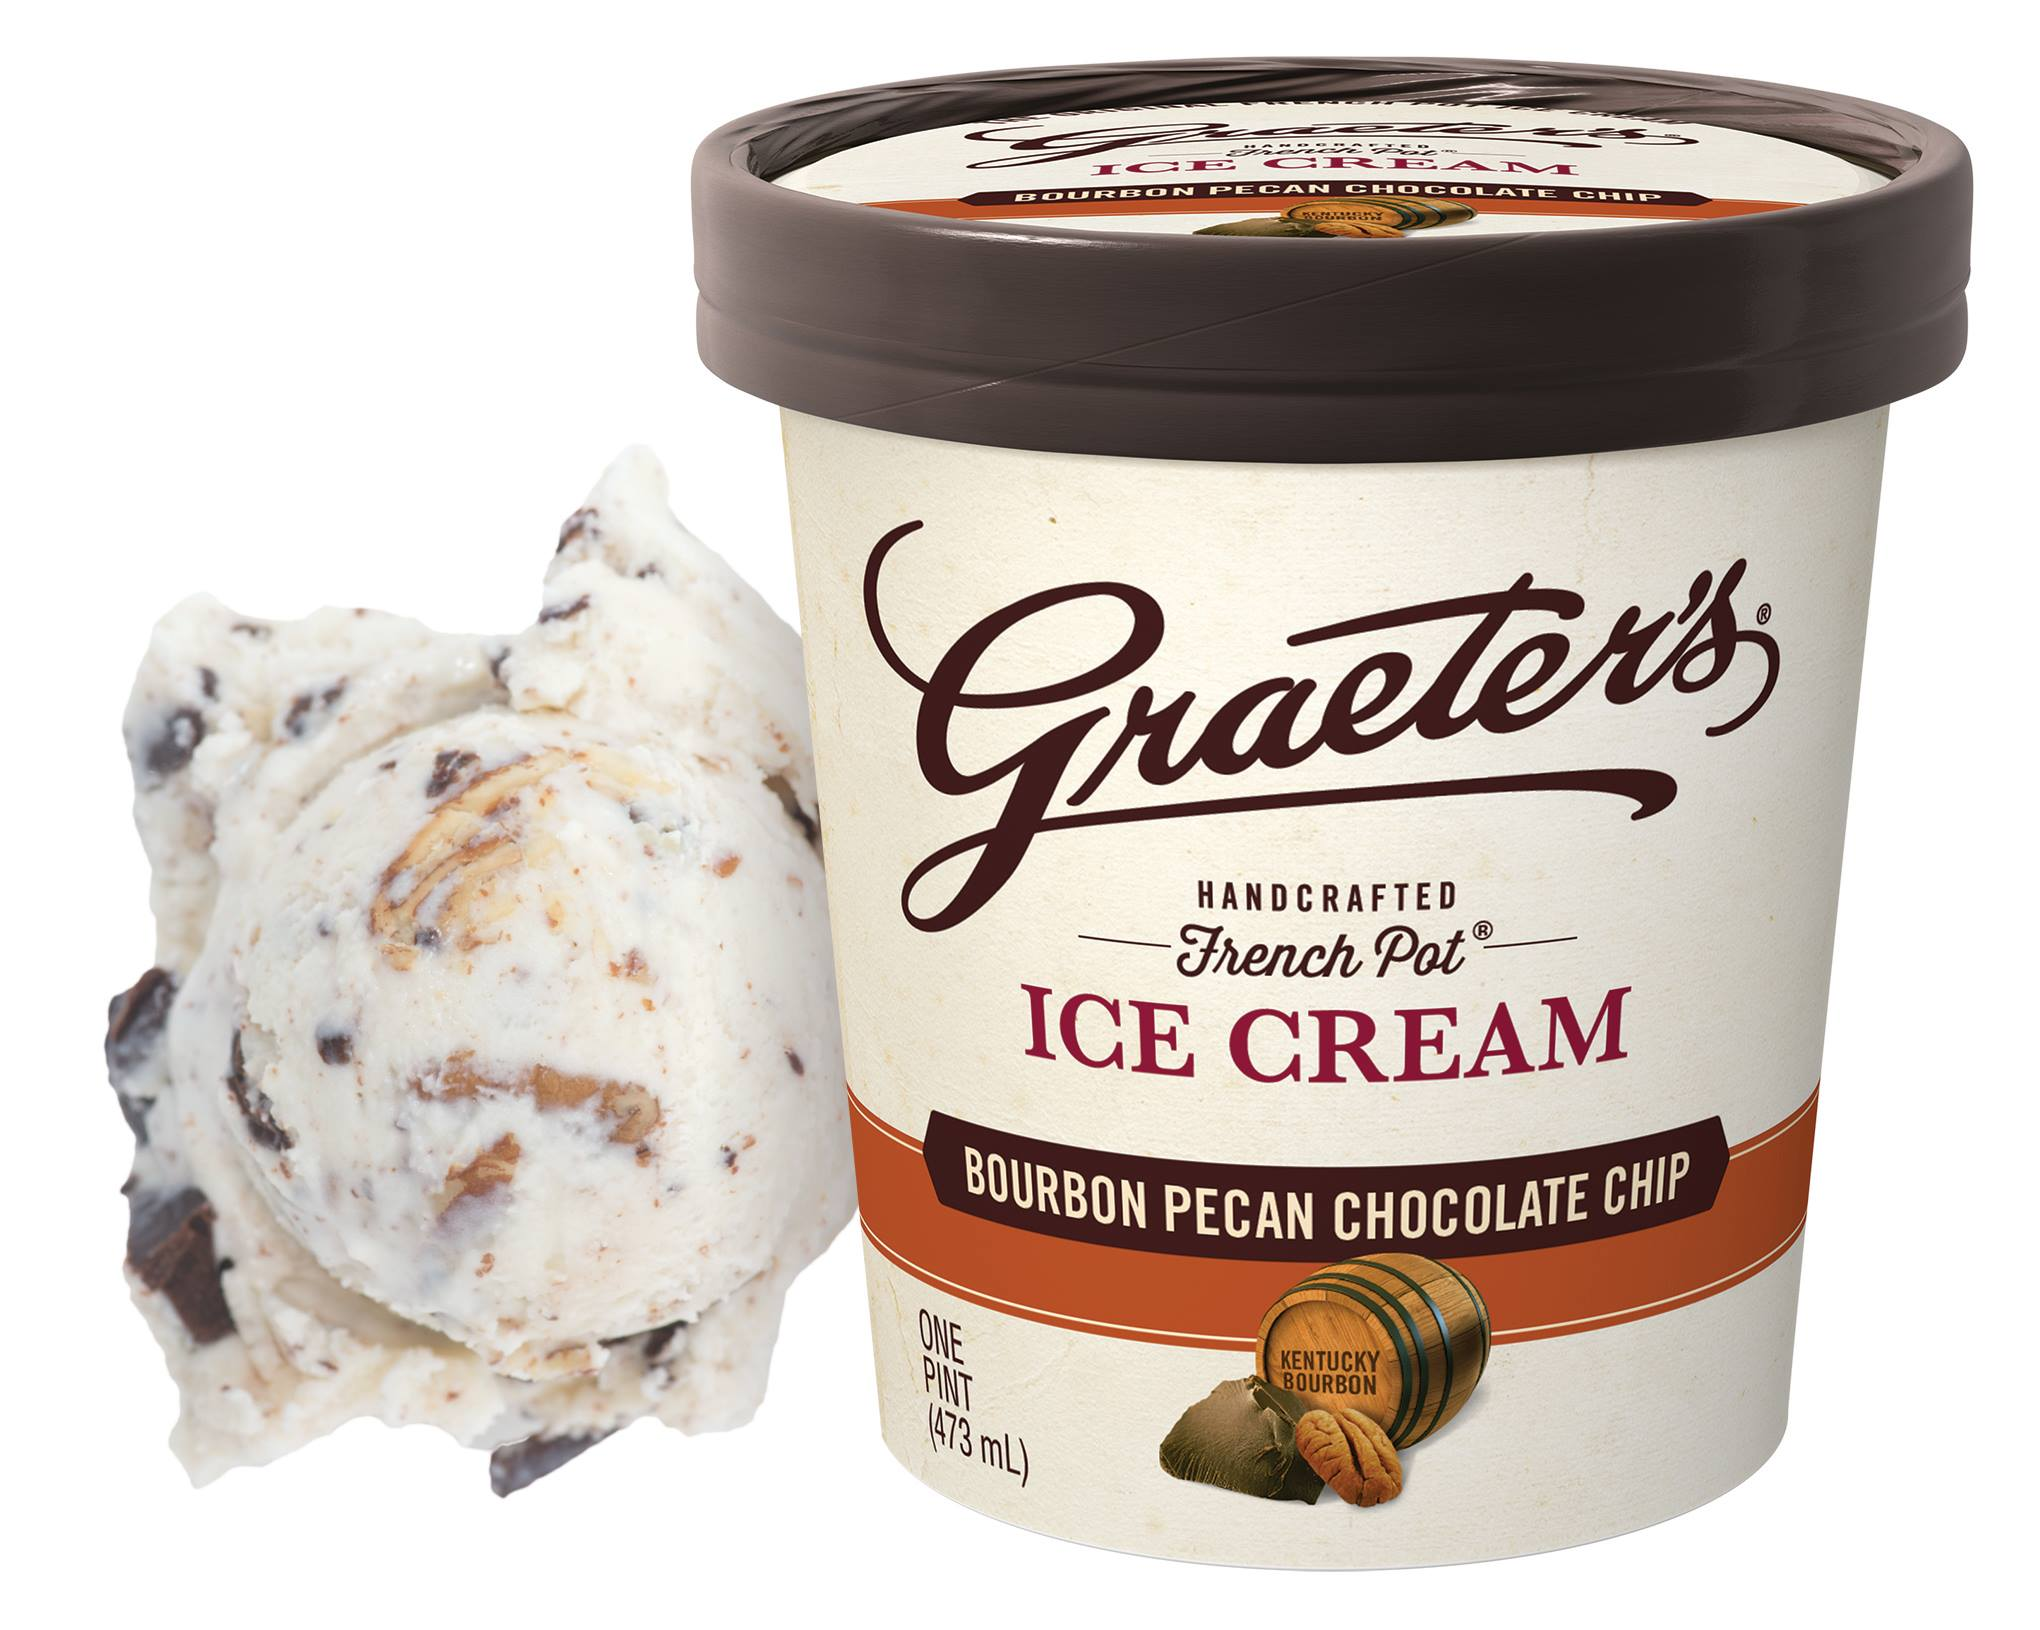 Graeter's new seasonal flavor is Bourbon Pecan Chocolate Chip. Made with Kentucky Bourbon.